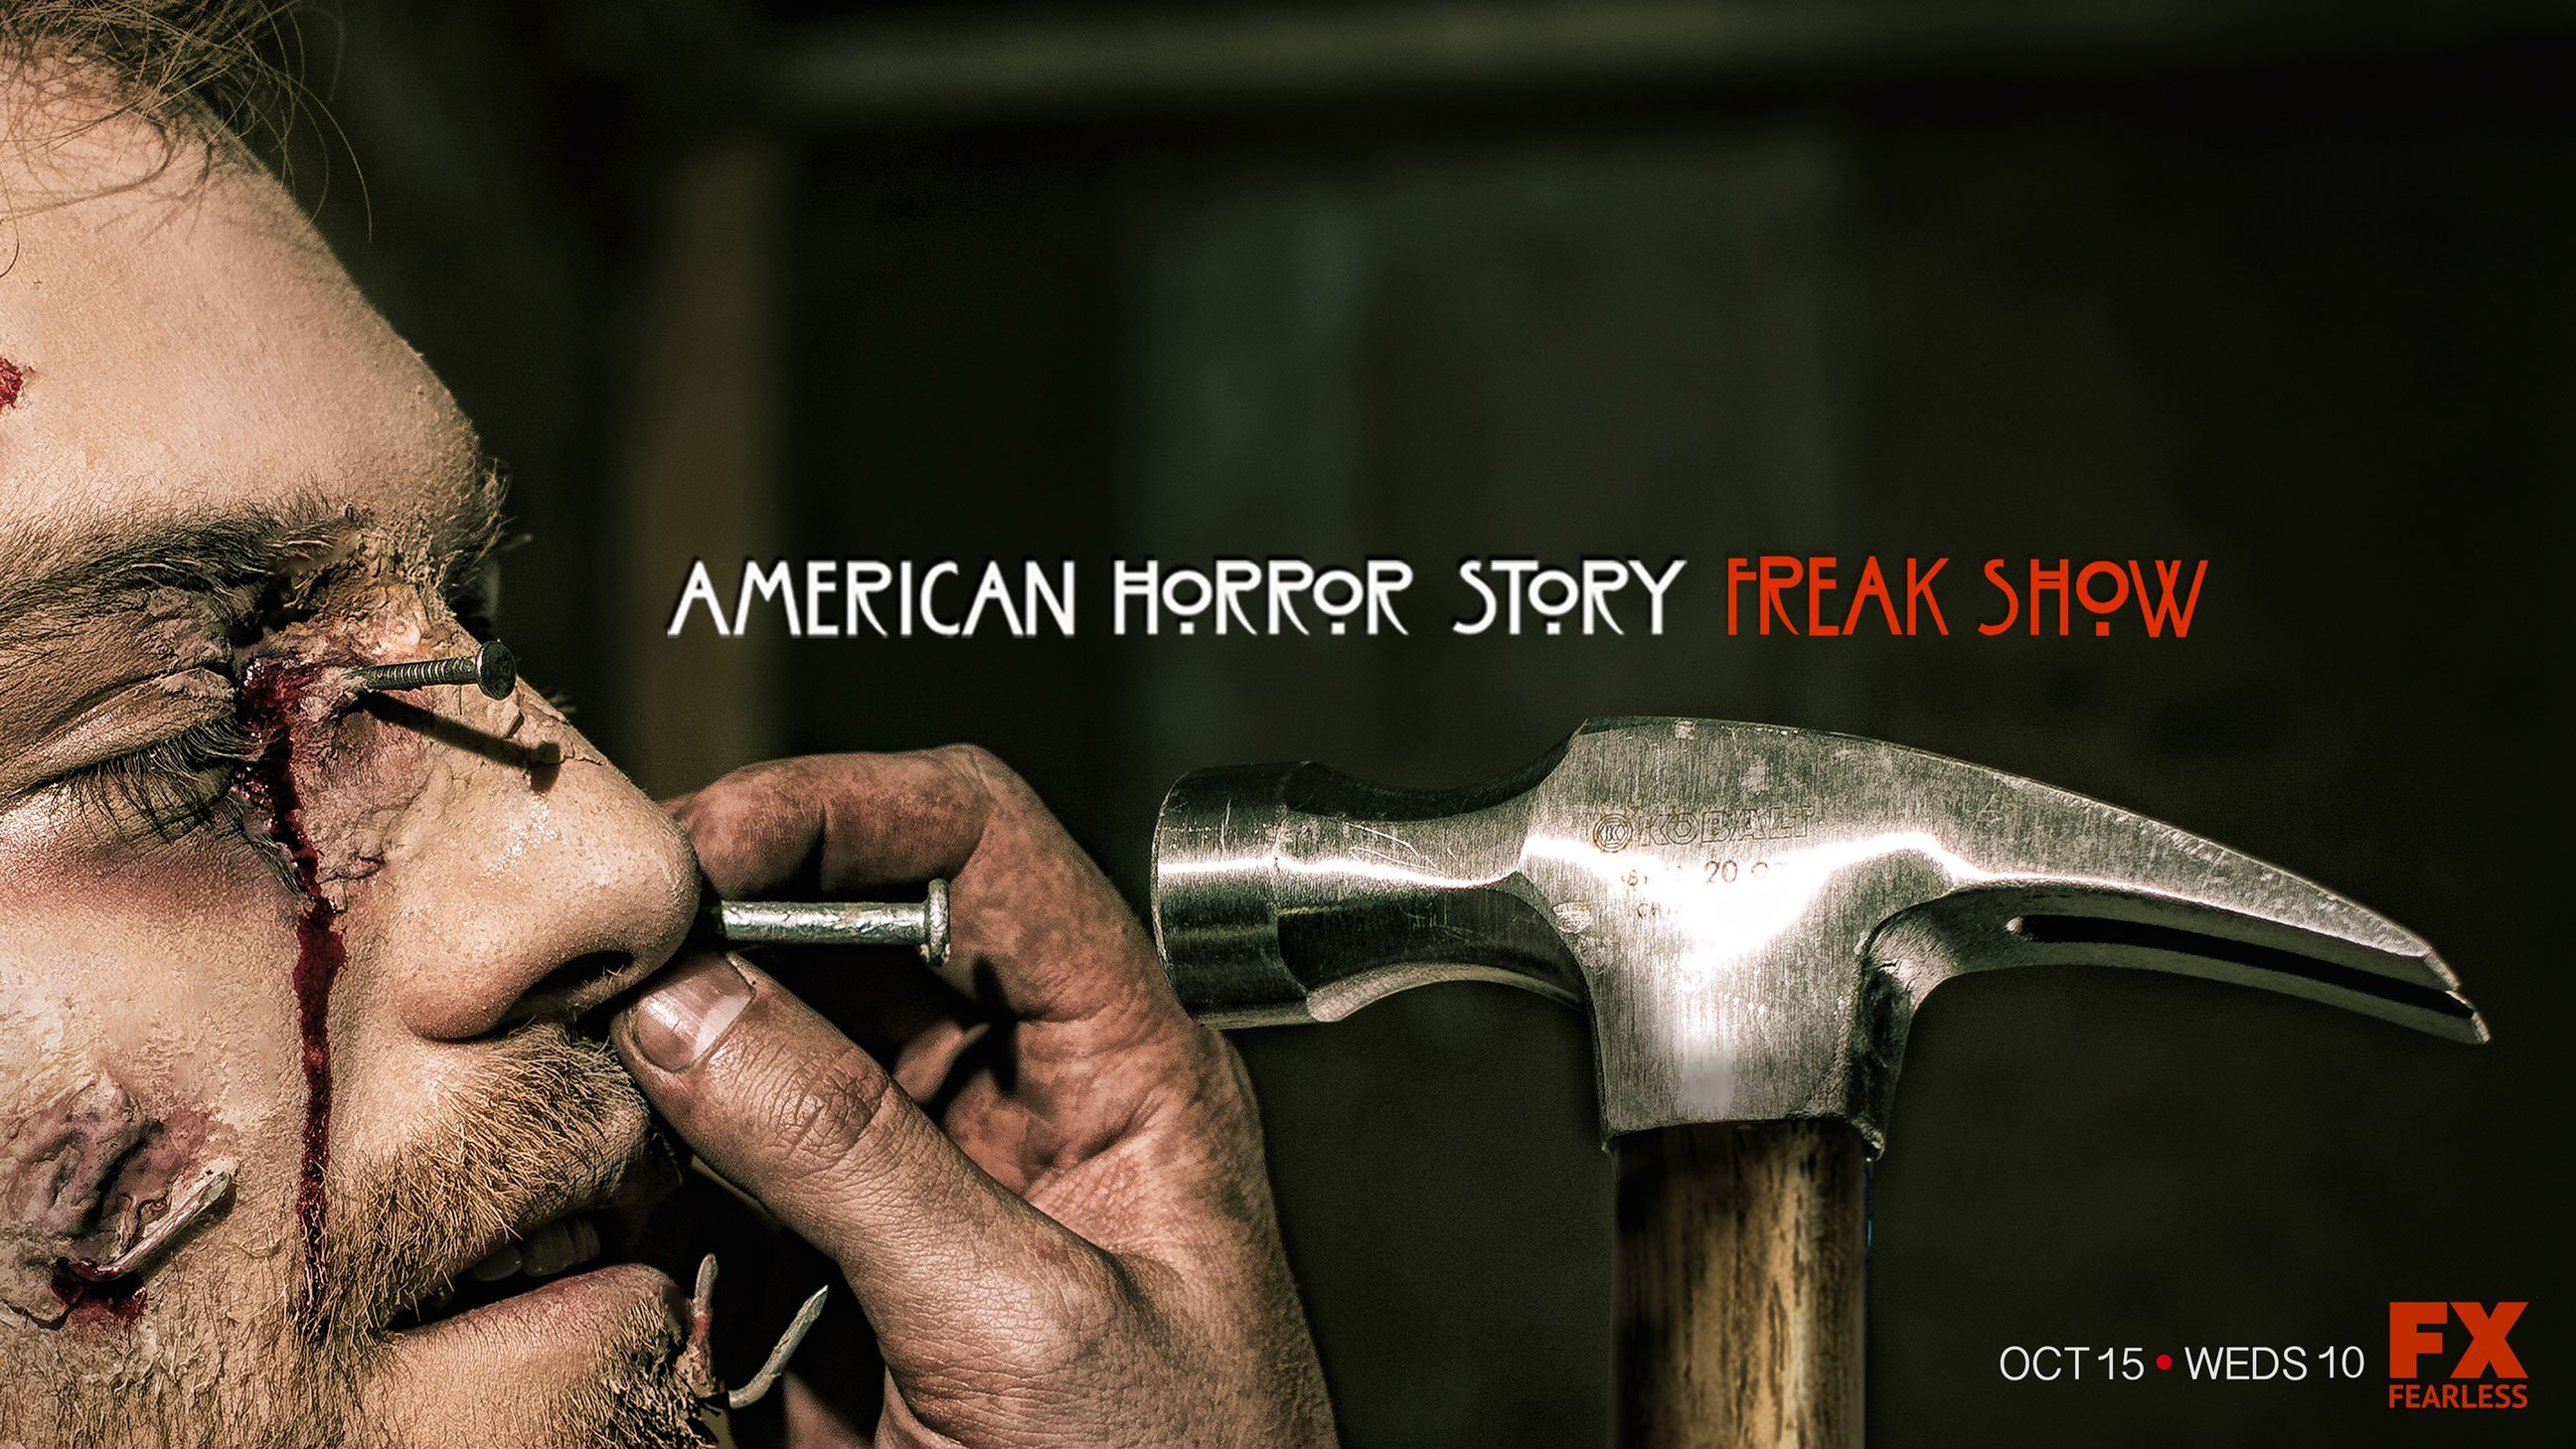 Free Download American Horror Story Freak Show Nails 2592x1458